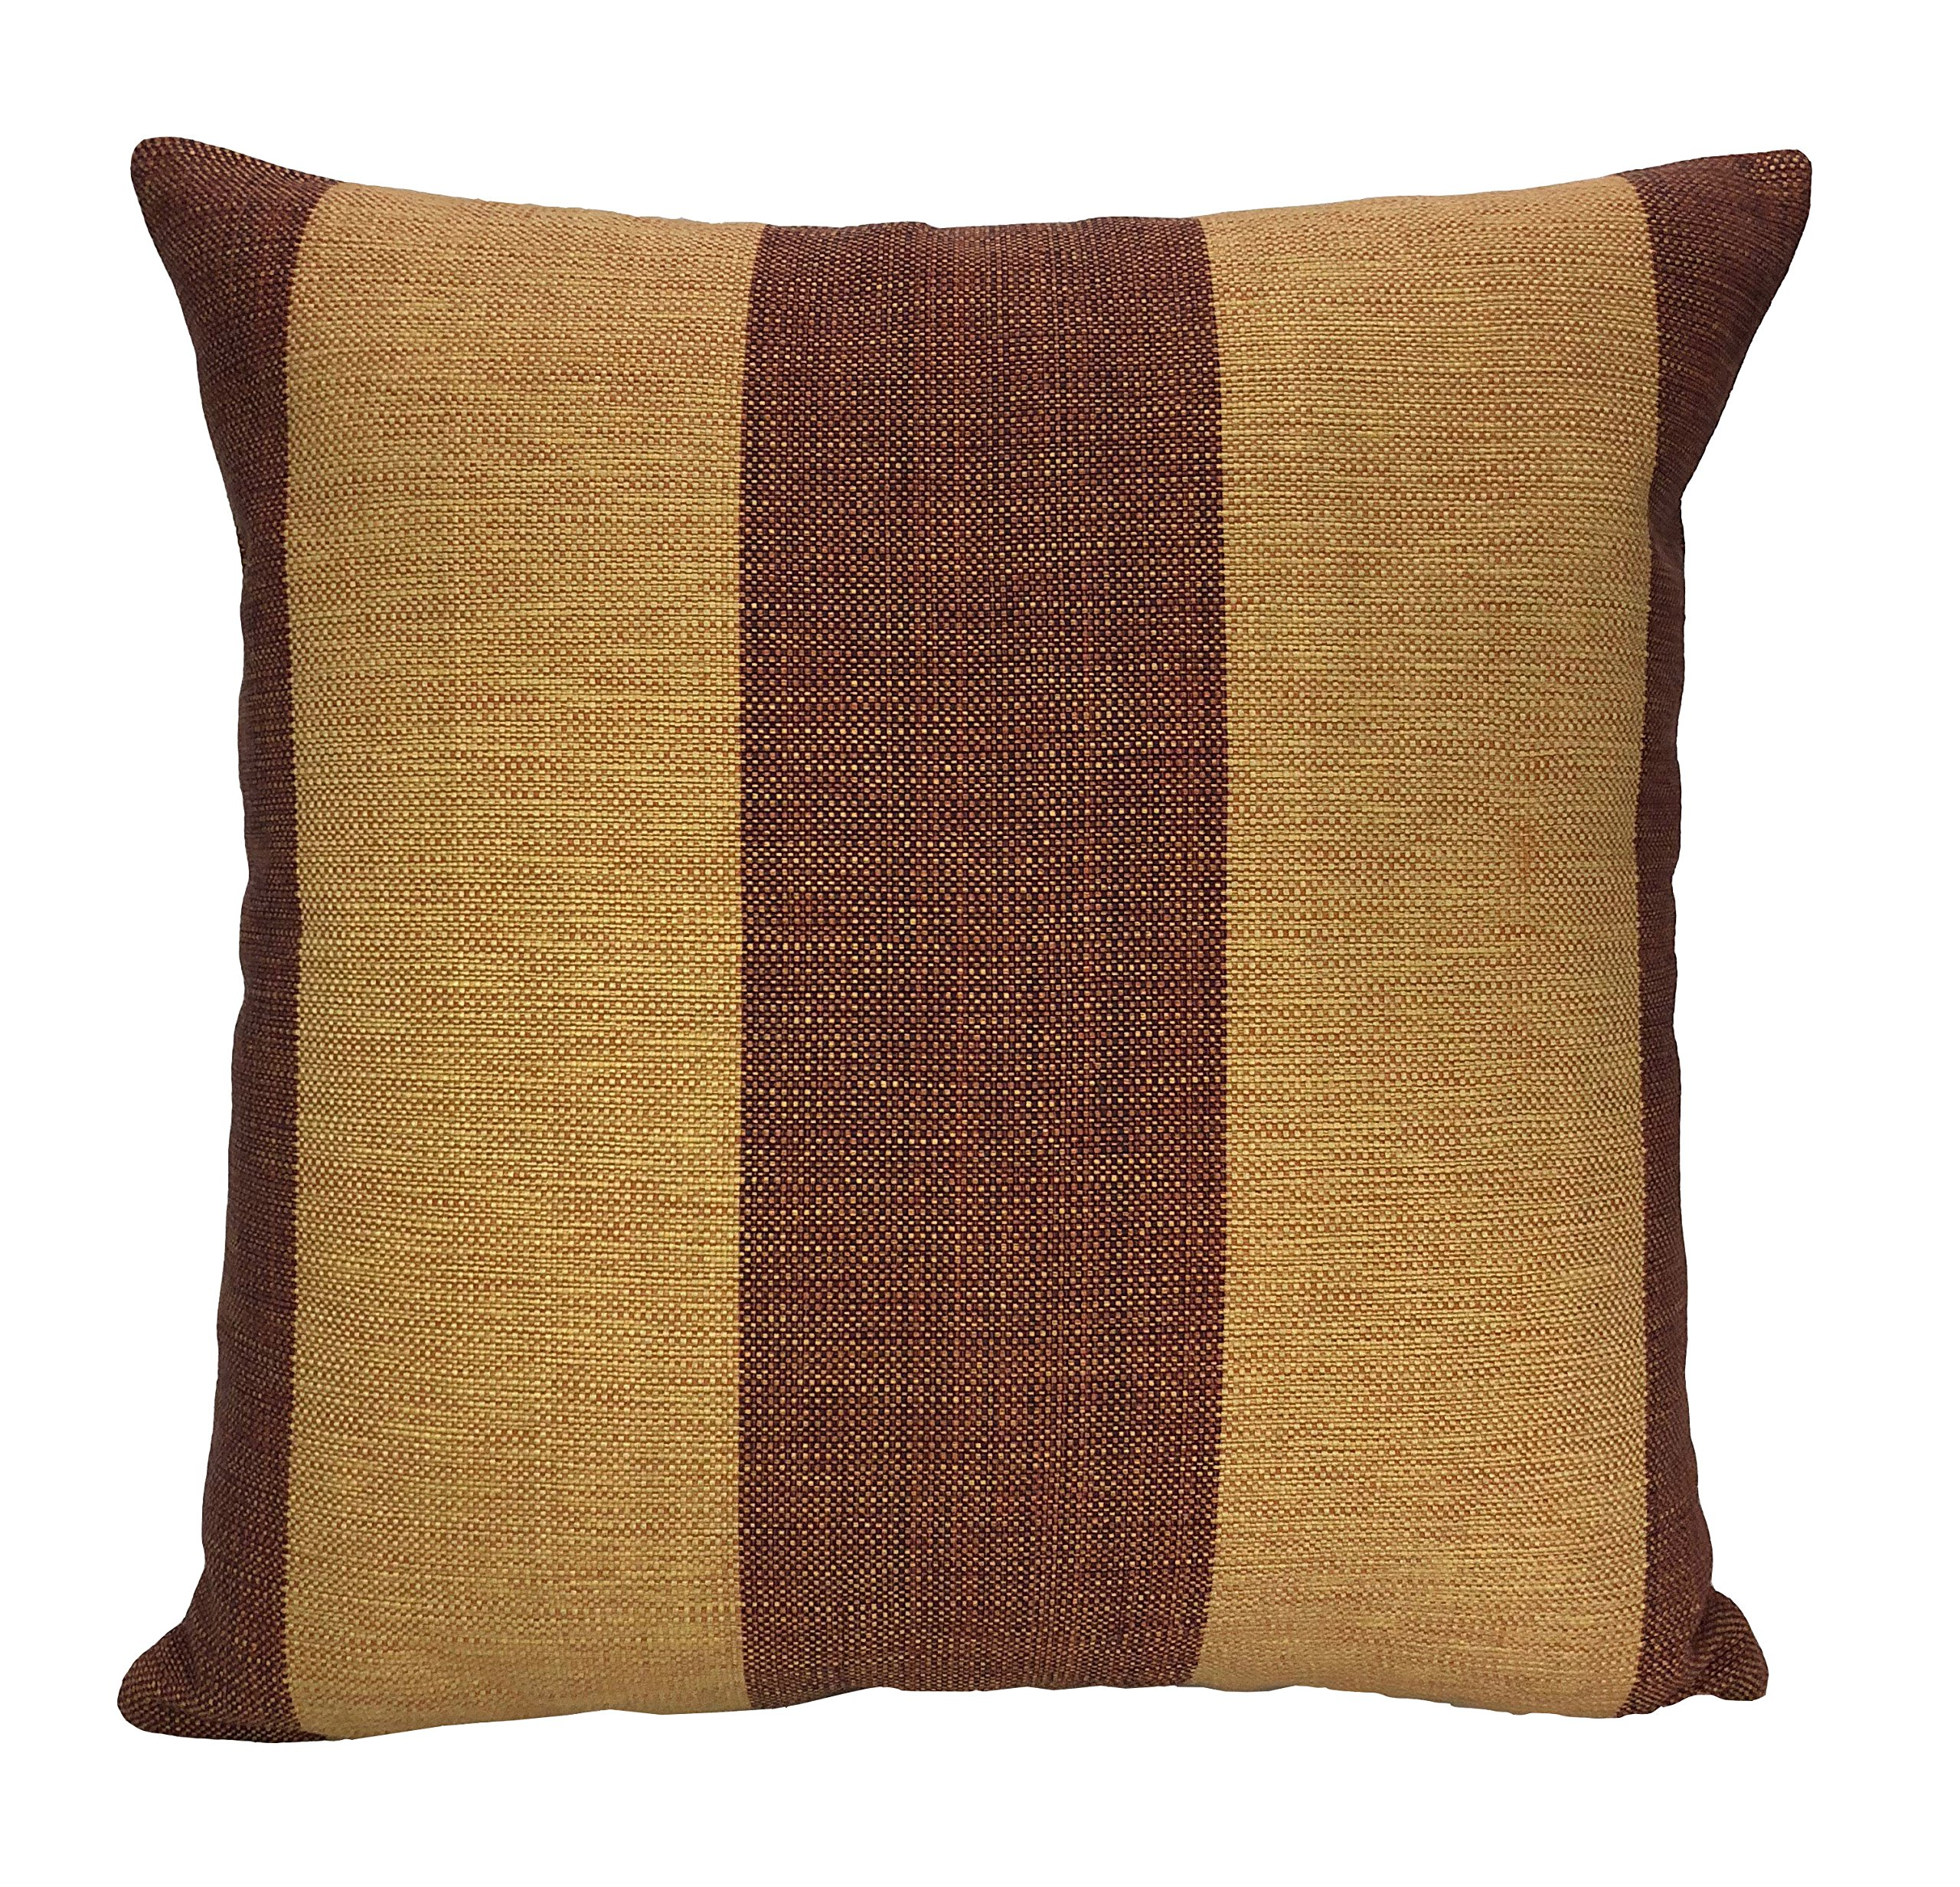 ArtiFab Cushion of Size 18X18 Inch, 100% Cotton, Wood Brown Stripe Decorative Pillow Cover, Design Throw Pillows for Sofa by ArtiFab (Image #5)